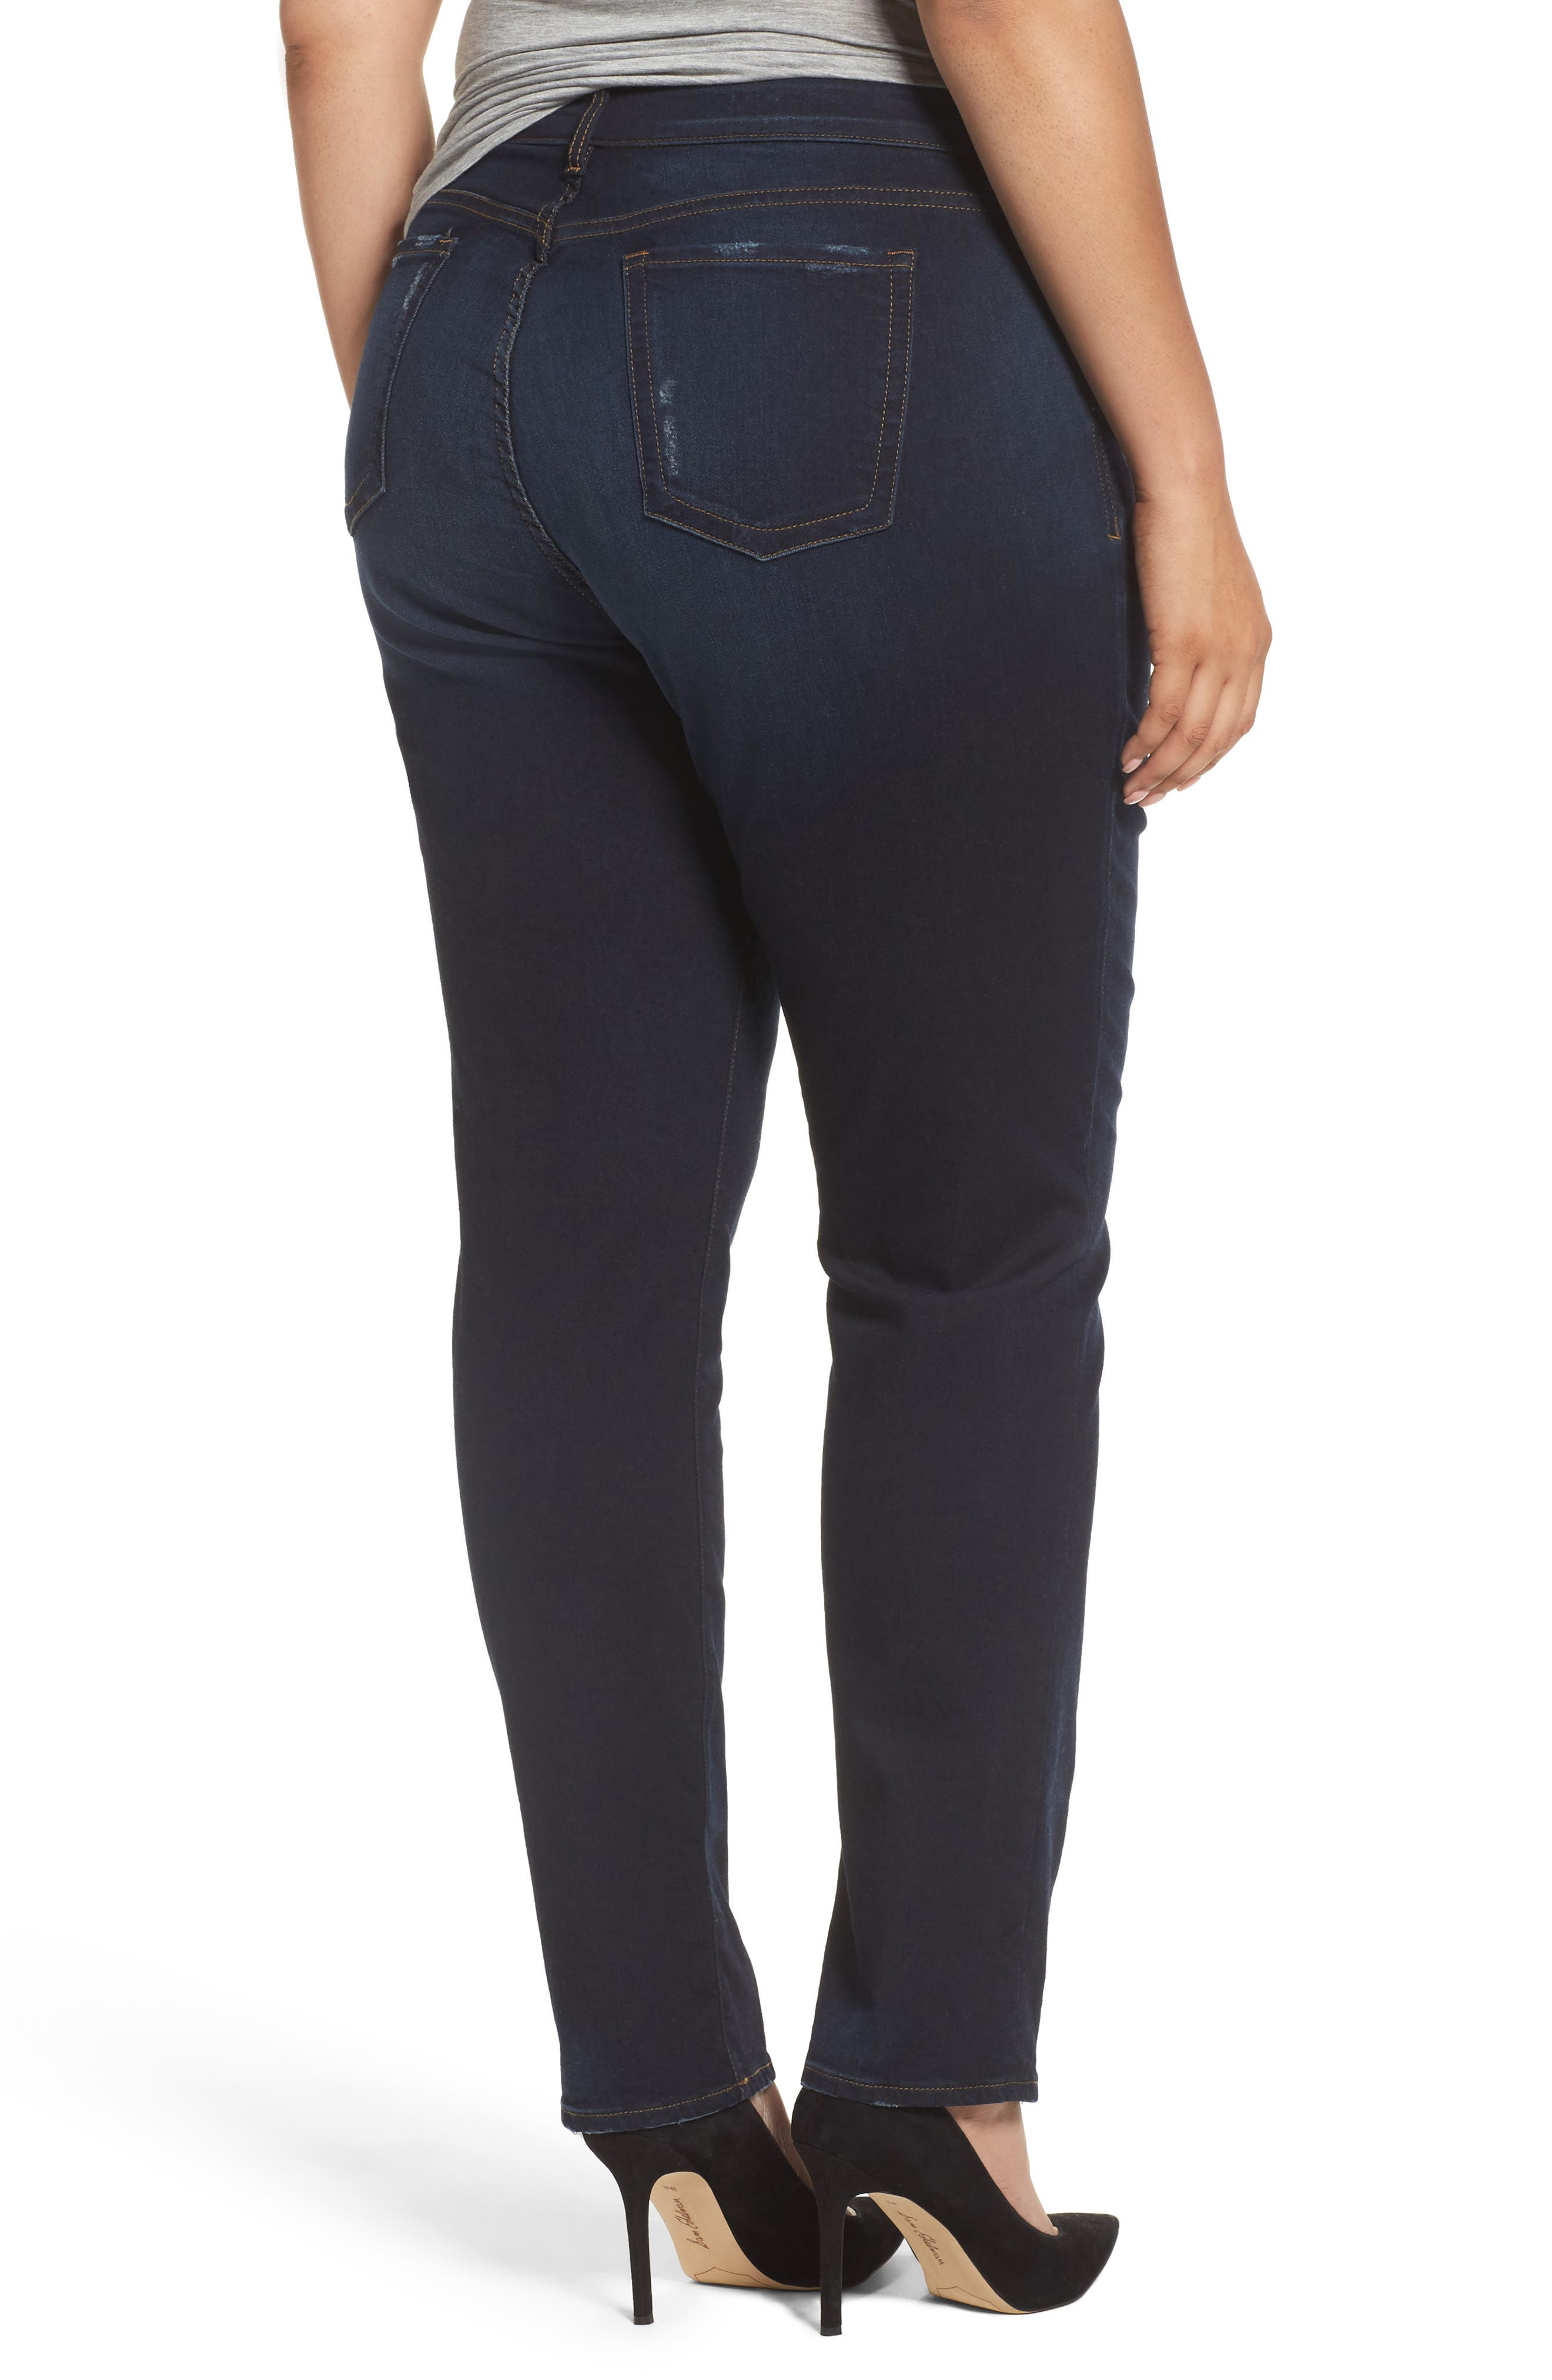 Diana Stretch Skinny Jeans,                             Alternate thumbnail 2, color,                             400